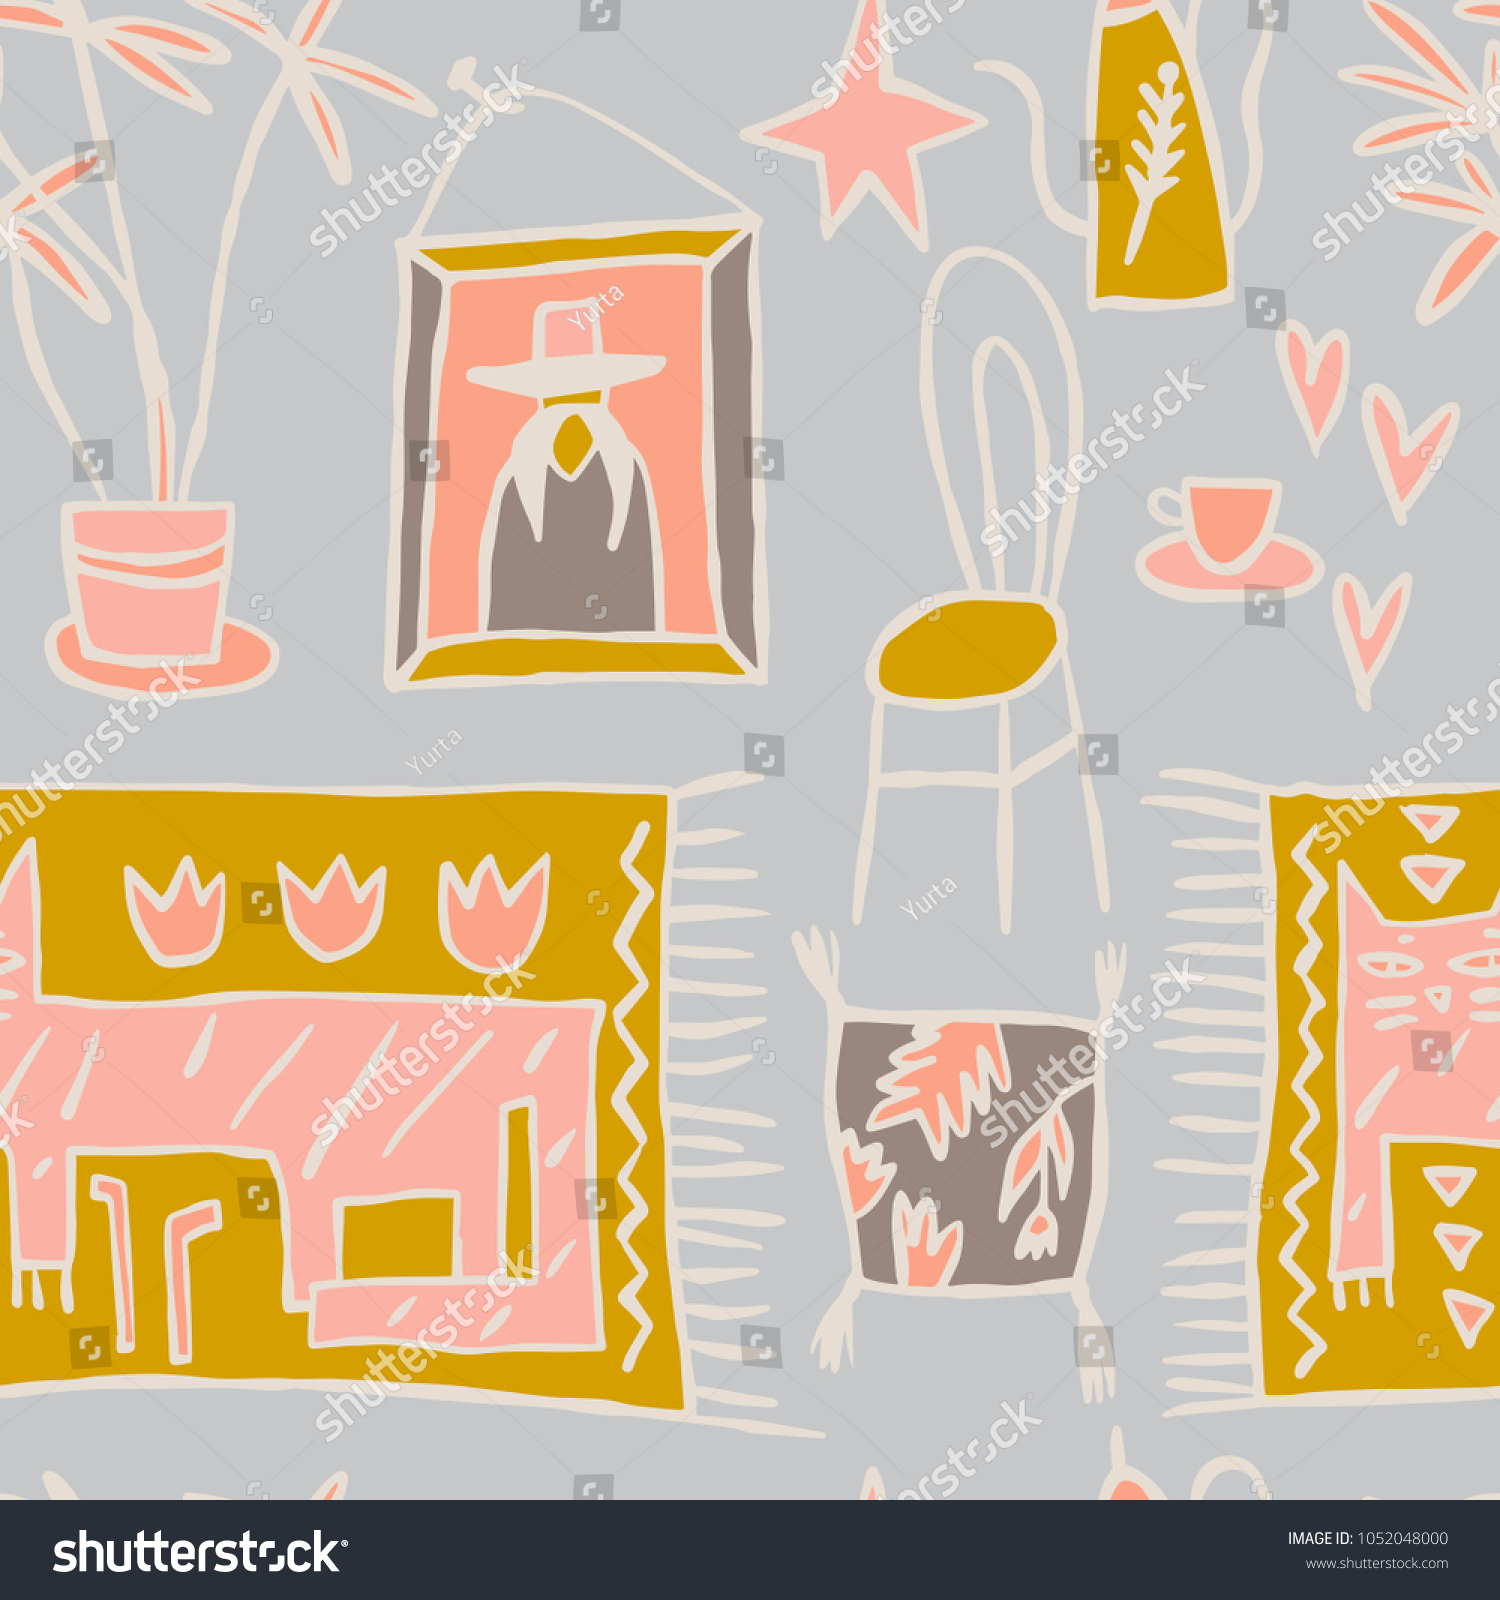 Stylish pattern in the tribal style with interior design elements artistic hand drawn seamless background